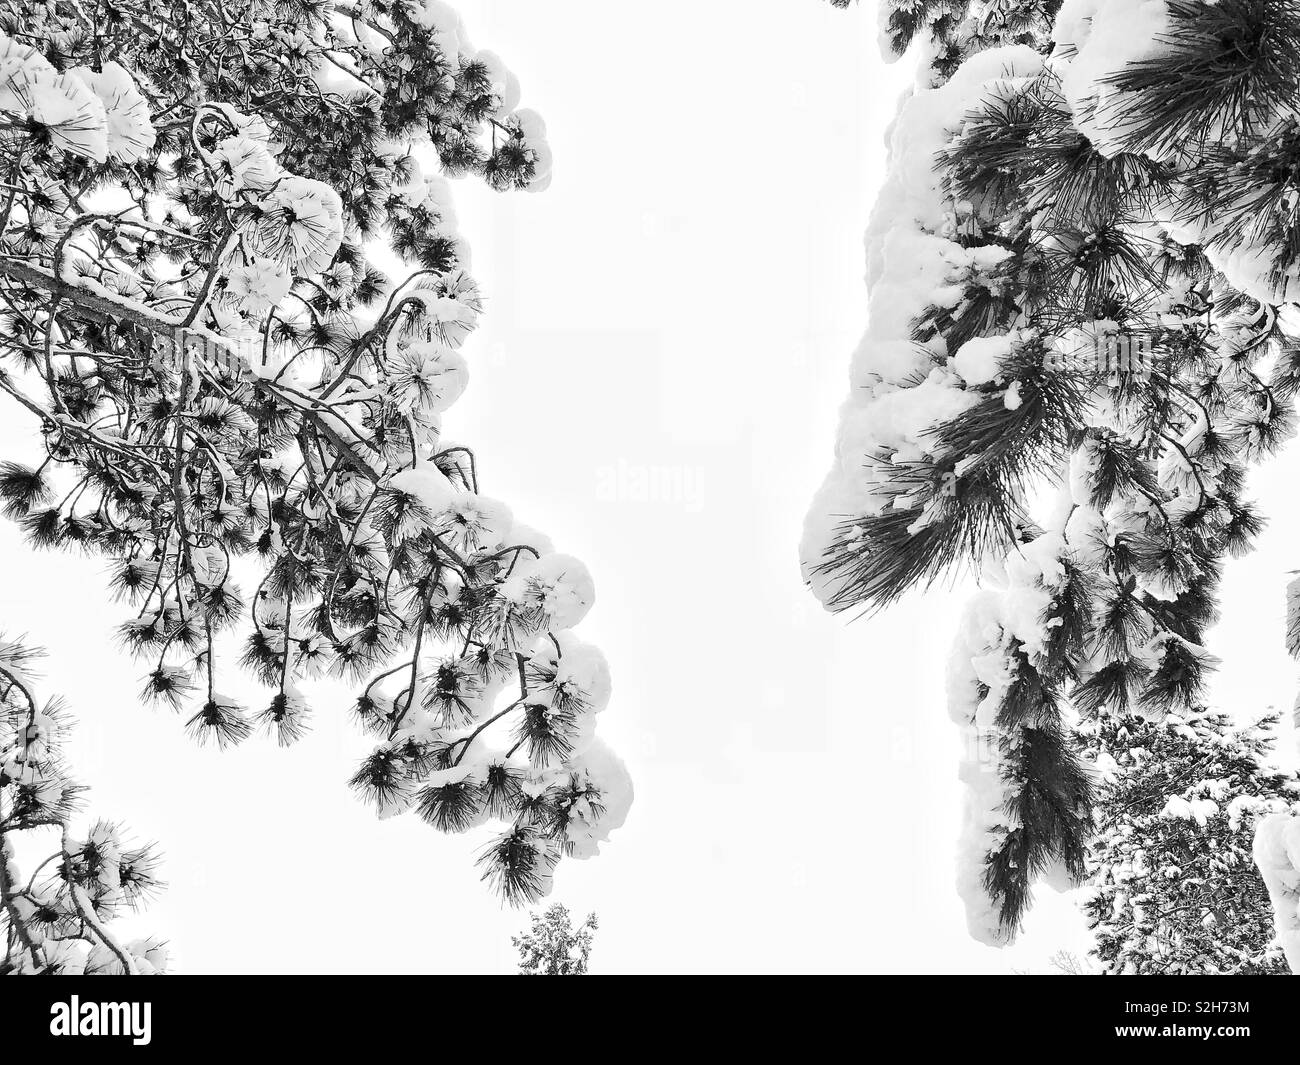 Pine tree branches under snow - Stock Image